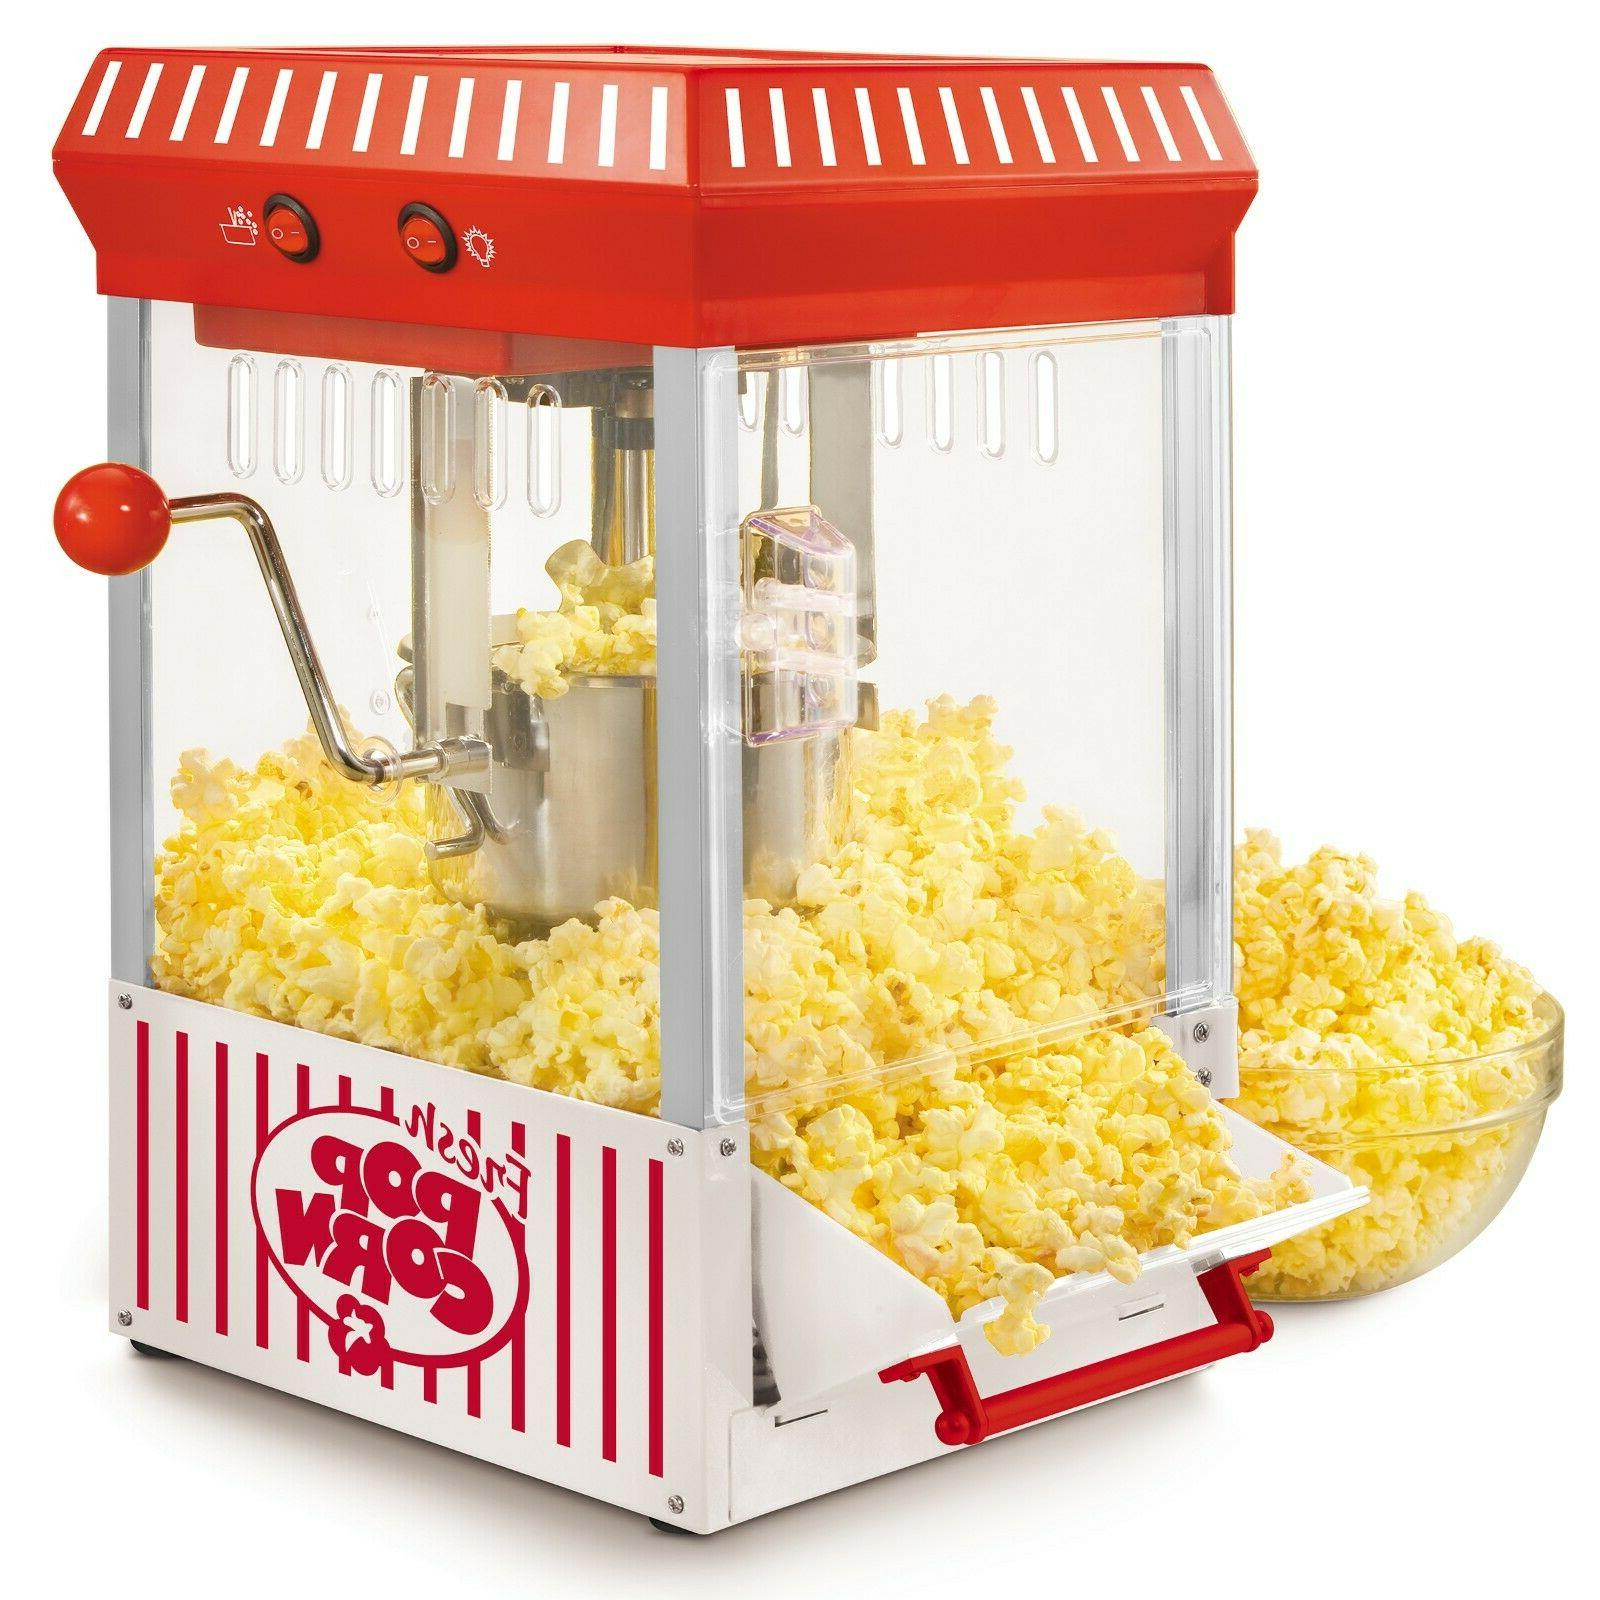 Vintage Nostalgia POPCORN MACHINE Popper Maker Retro Look Ke